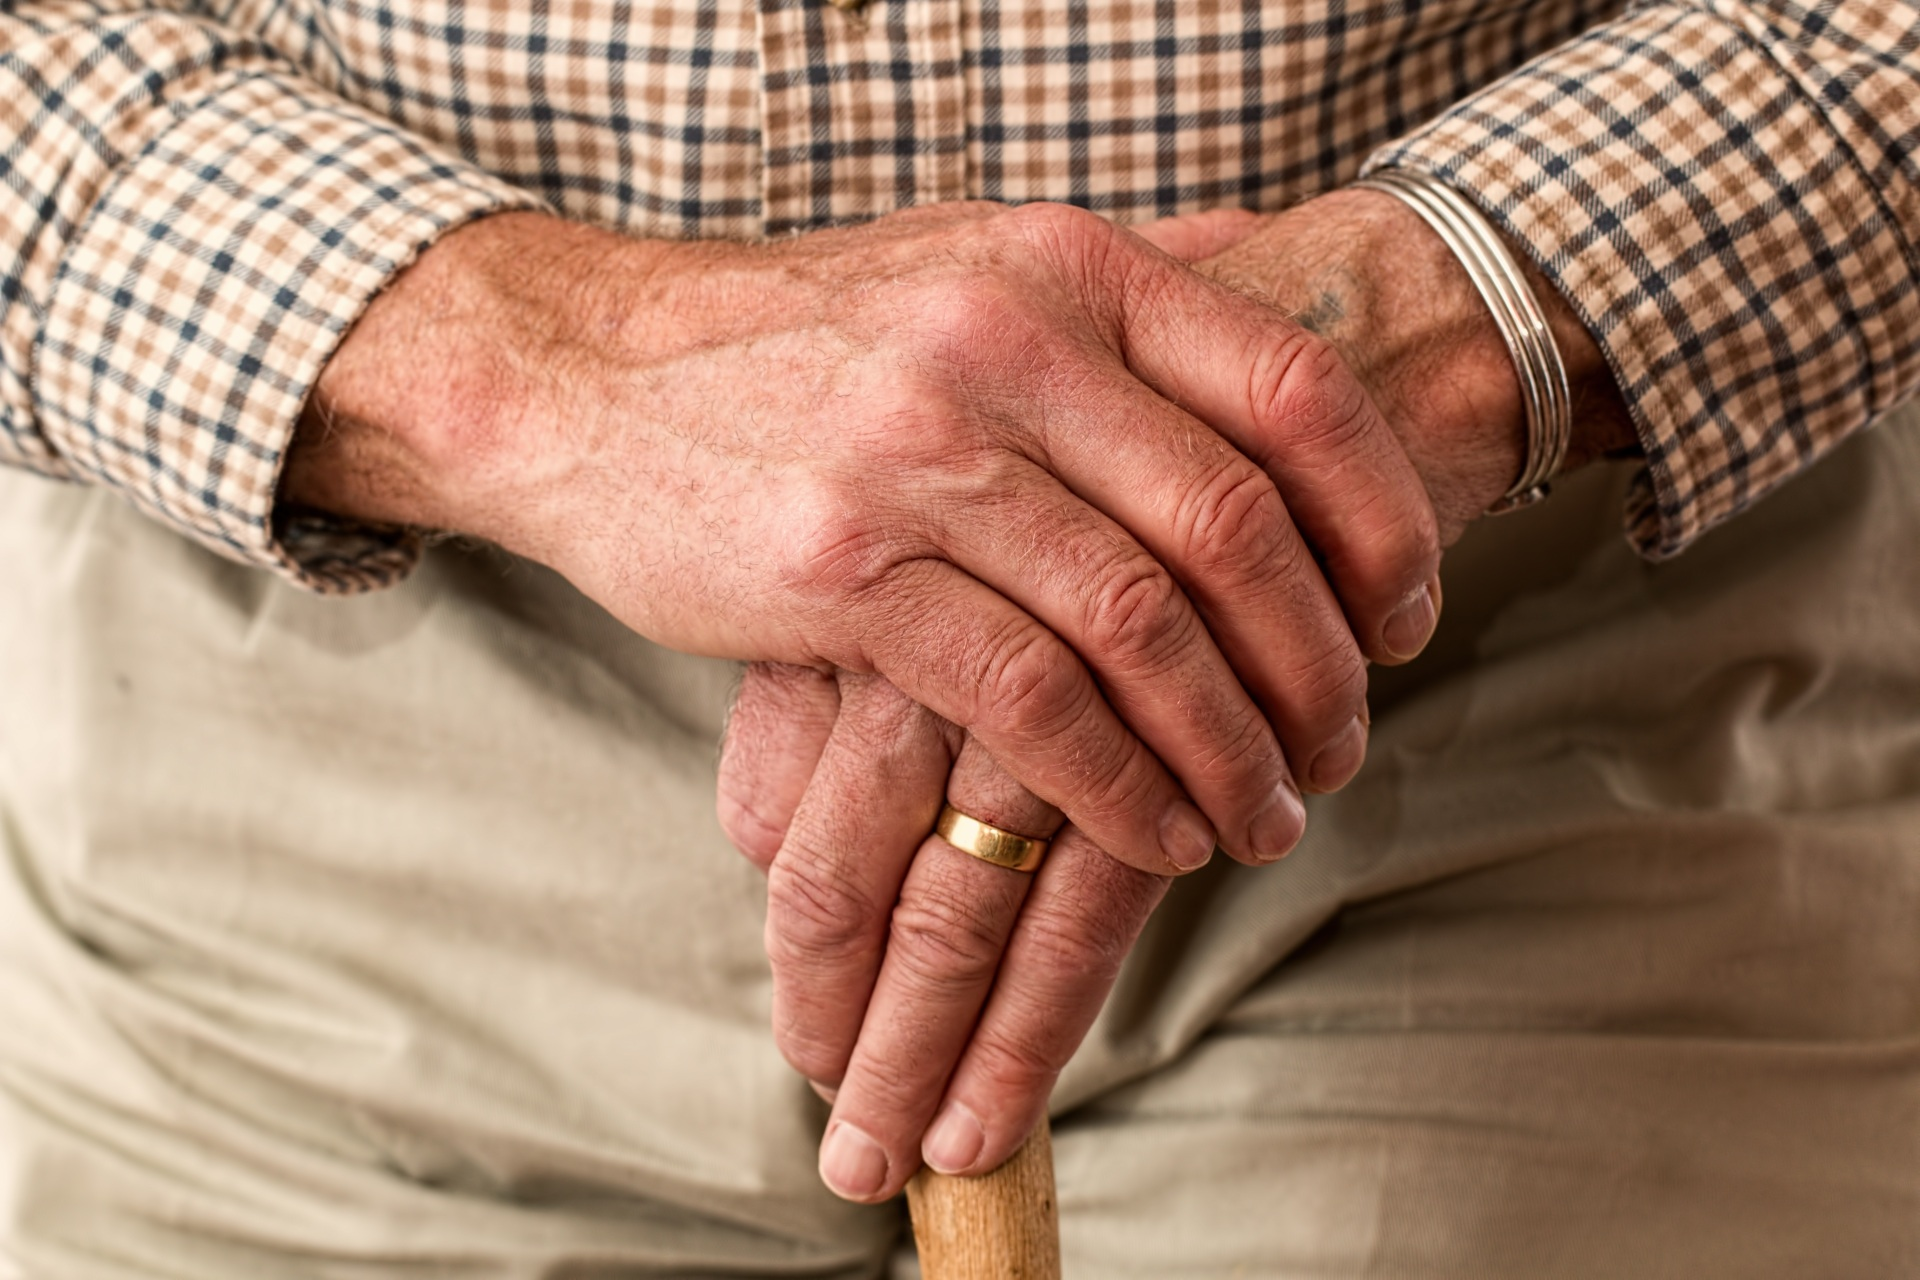 An elderly man's hands rest on top of a wooden cane.